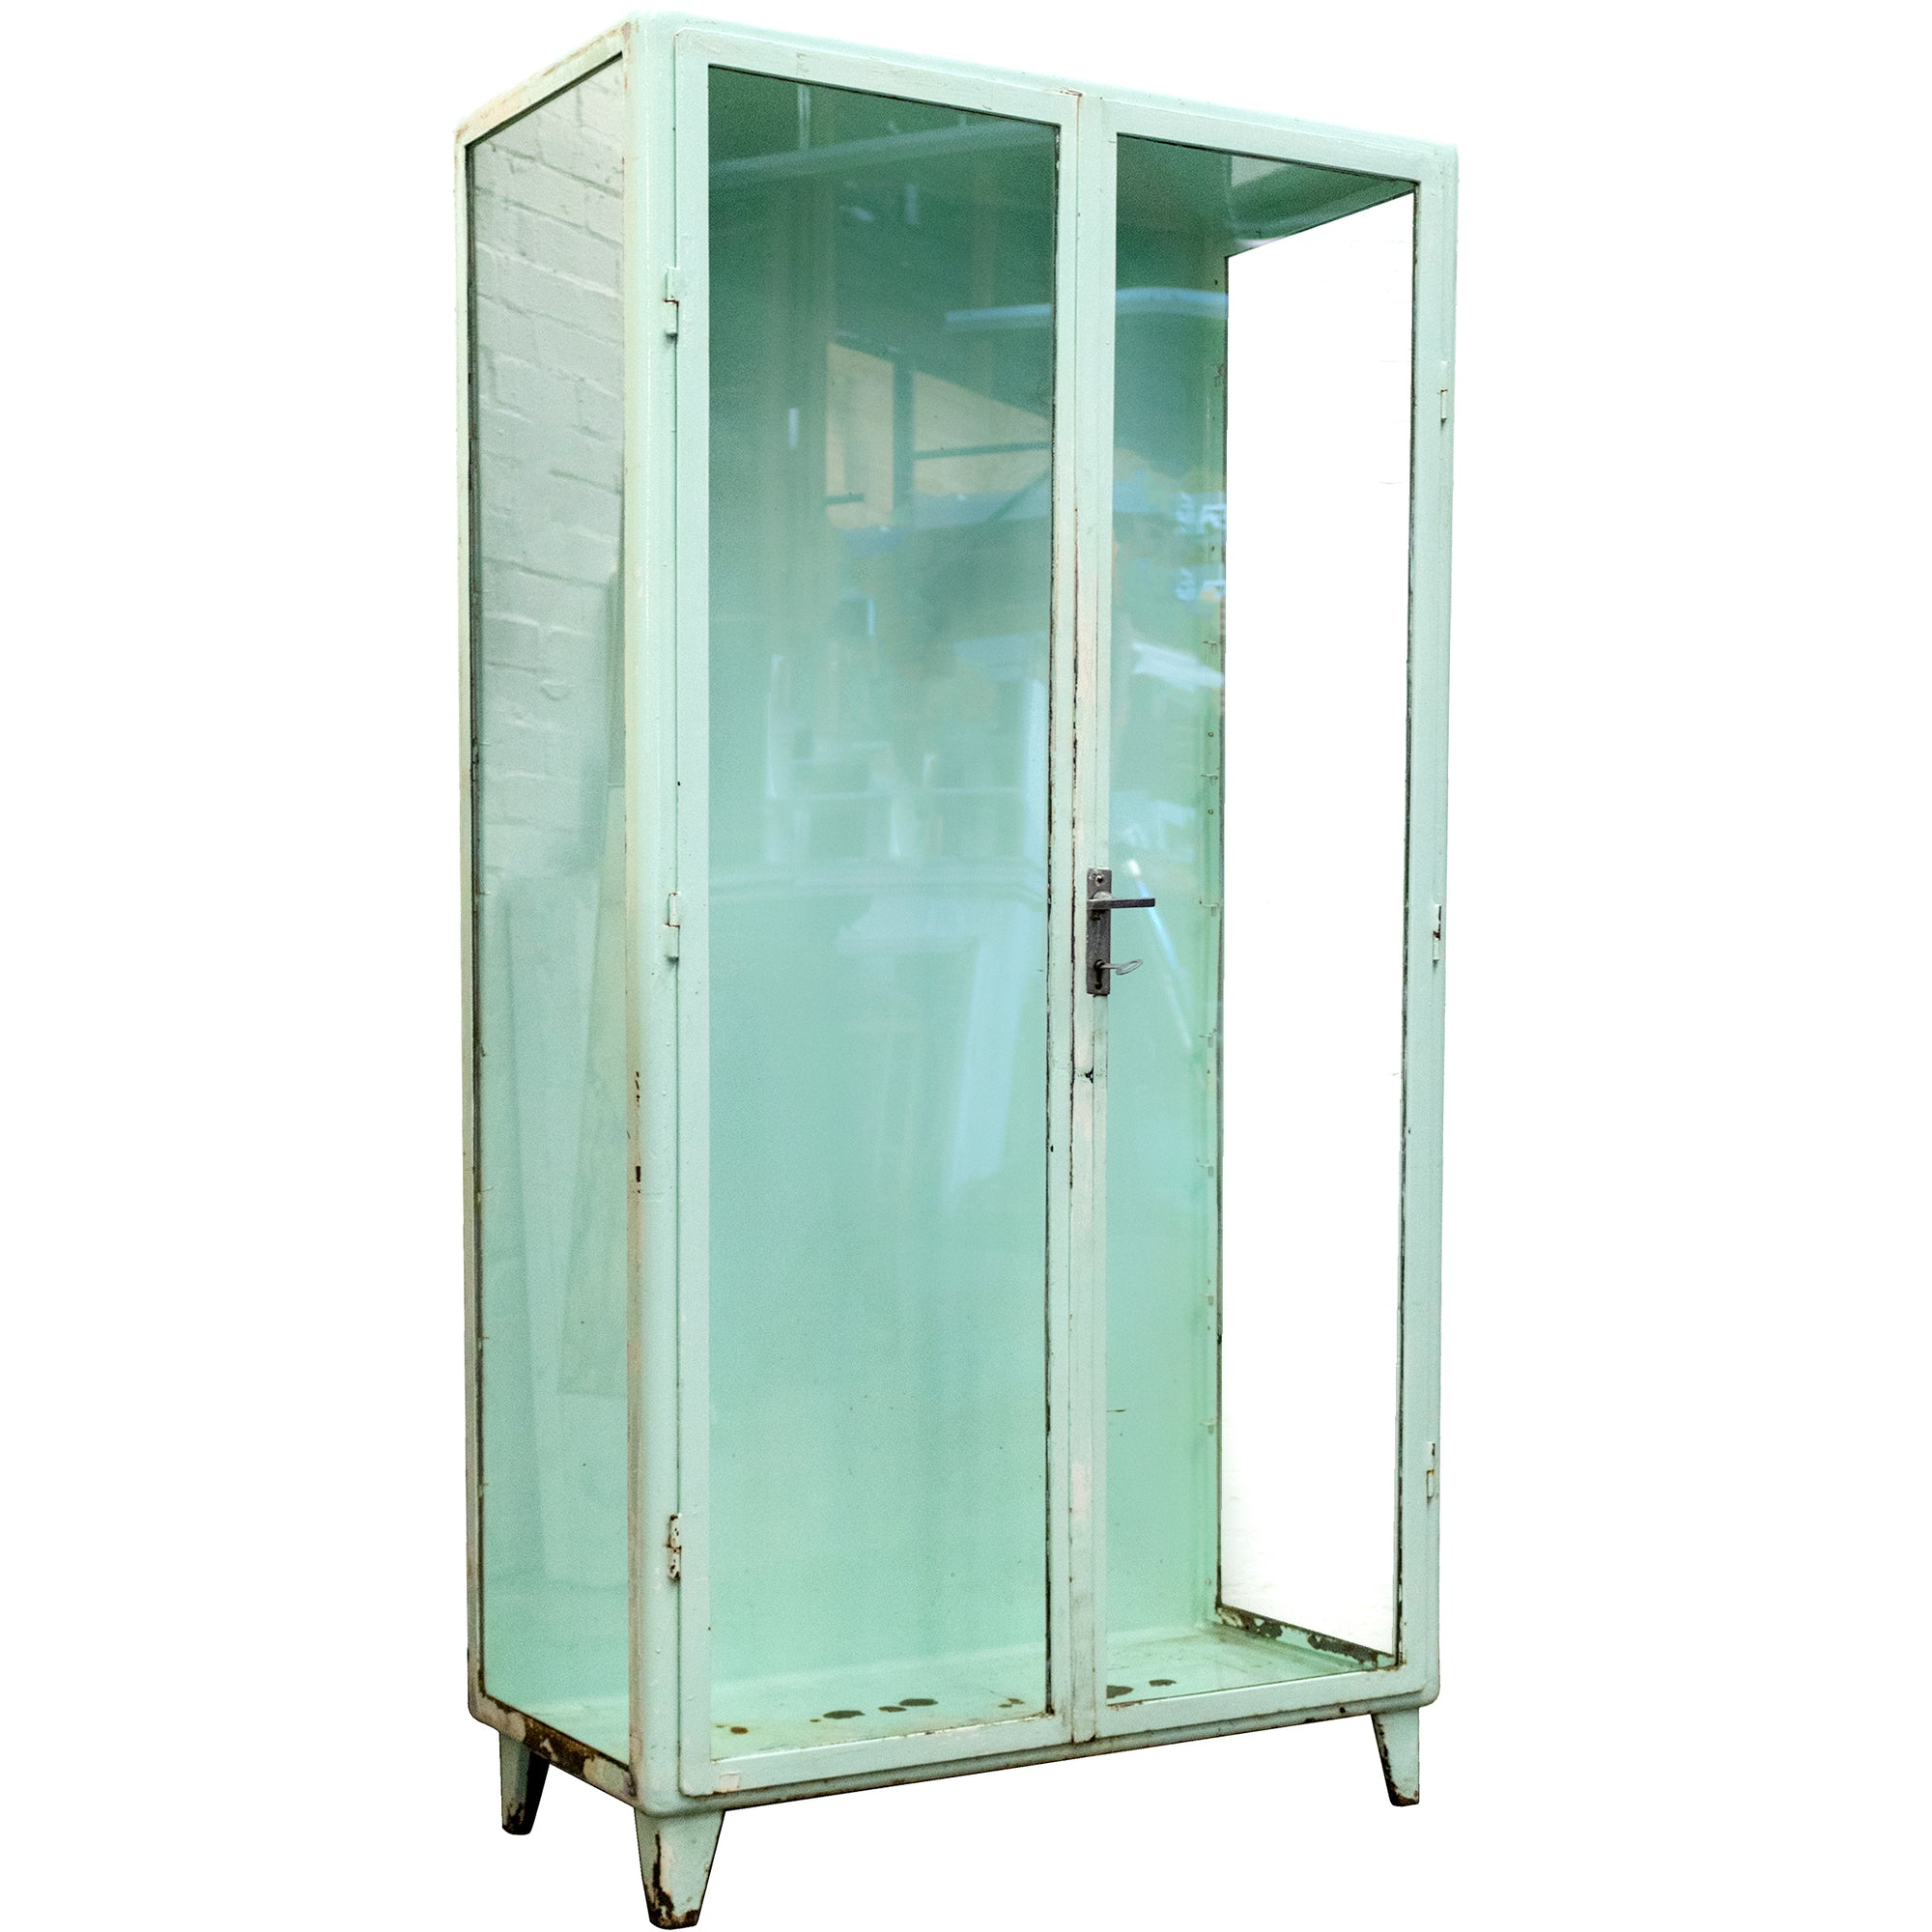 Mid-Century Industrial Steel Vitrine Glass Display Cabinet